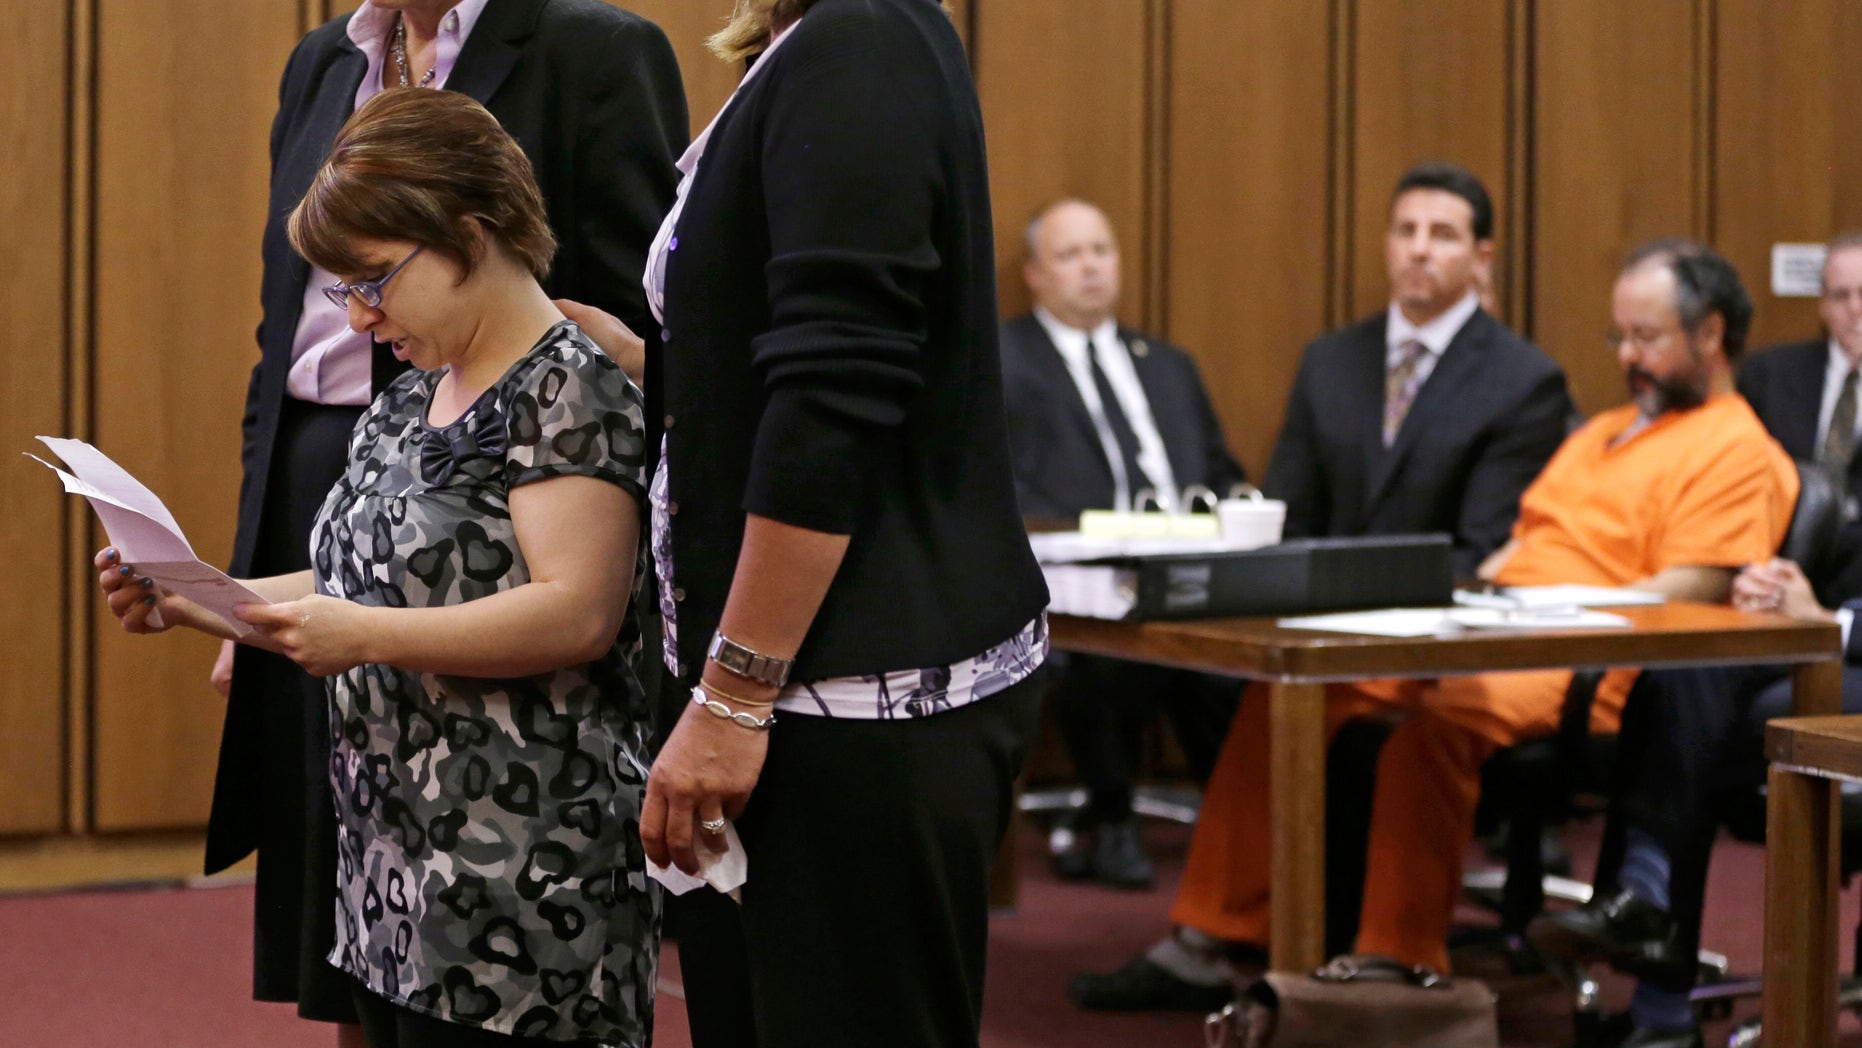 Michelle Knight speaks during the sentencing phase for Ariel Castro in a Cleveland courtroom on Aug. 1, 2013.